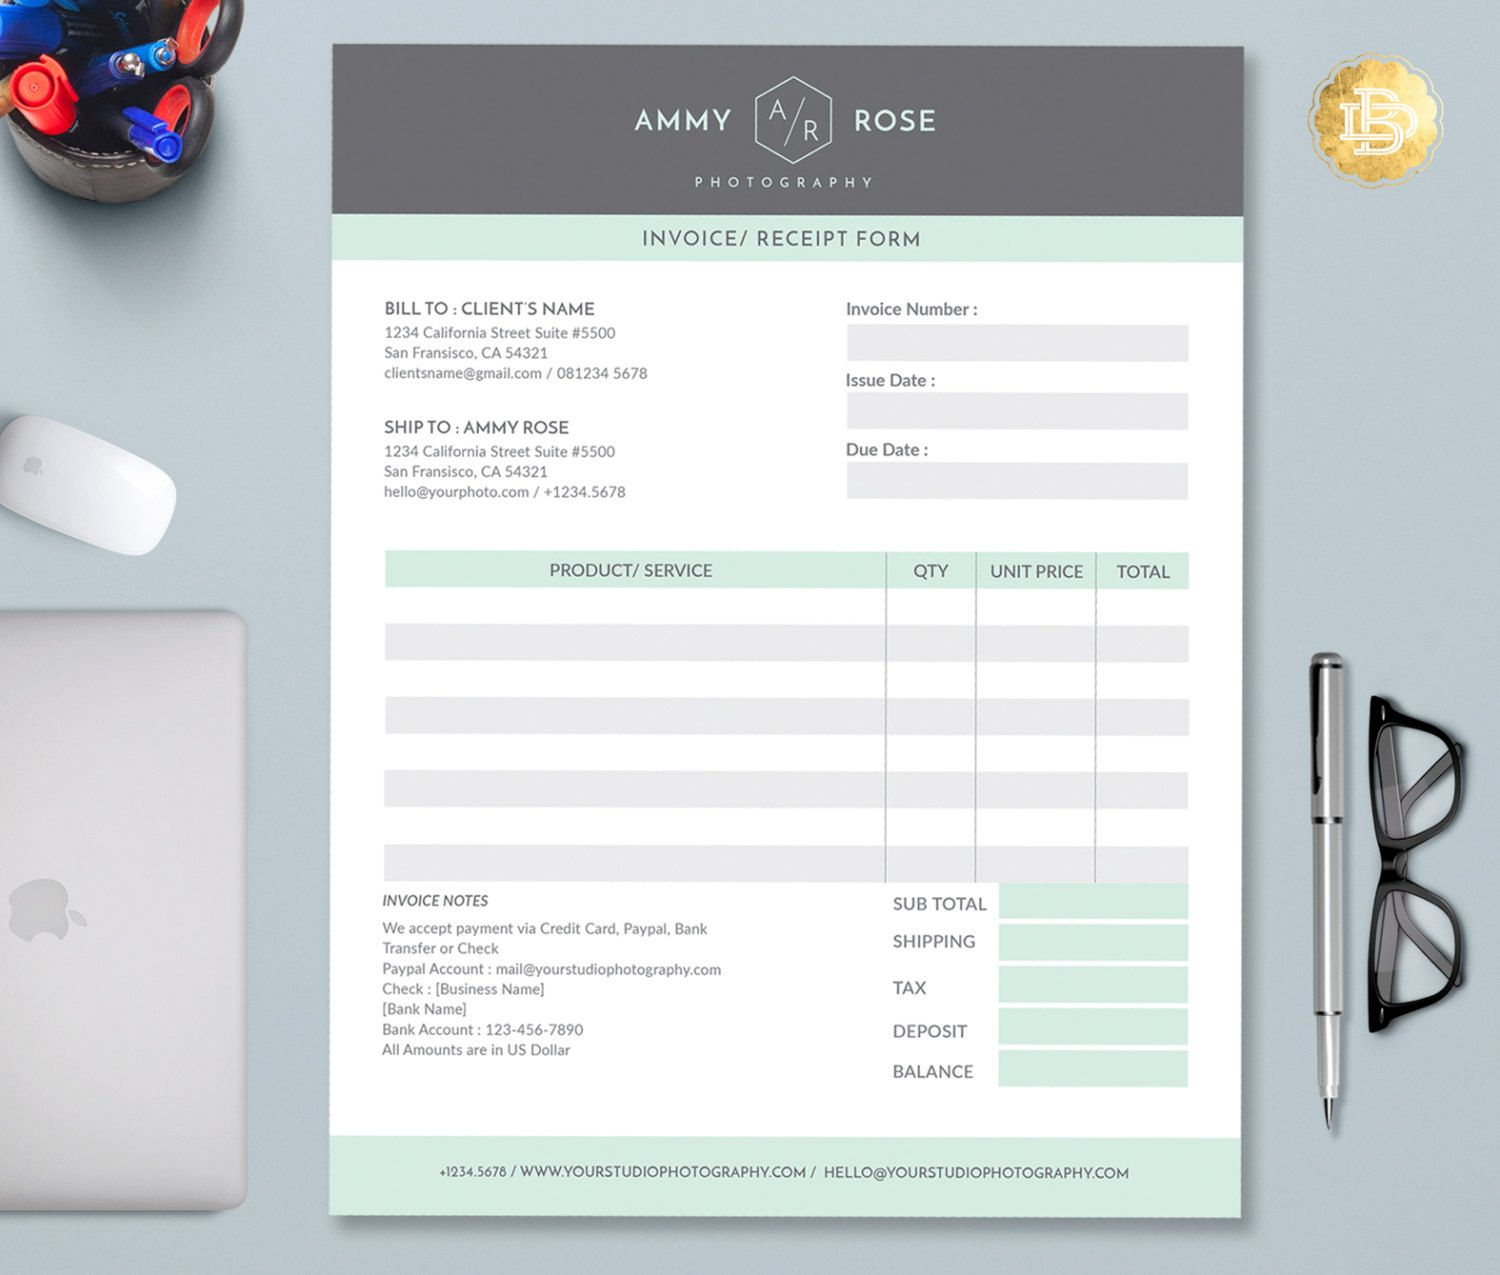 Invoice Template For Photographers Photography Invoice Etsy In 2021 Photography Invoice Template Photography Invoice Invoice Template